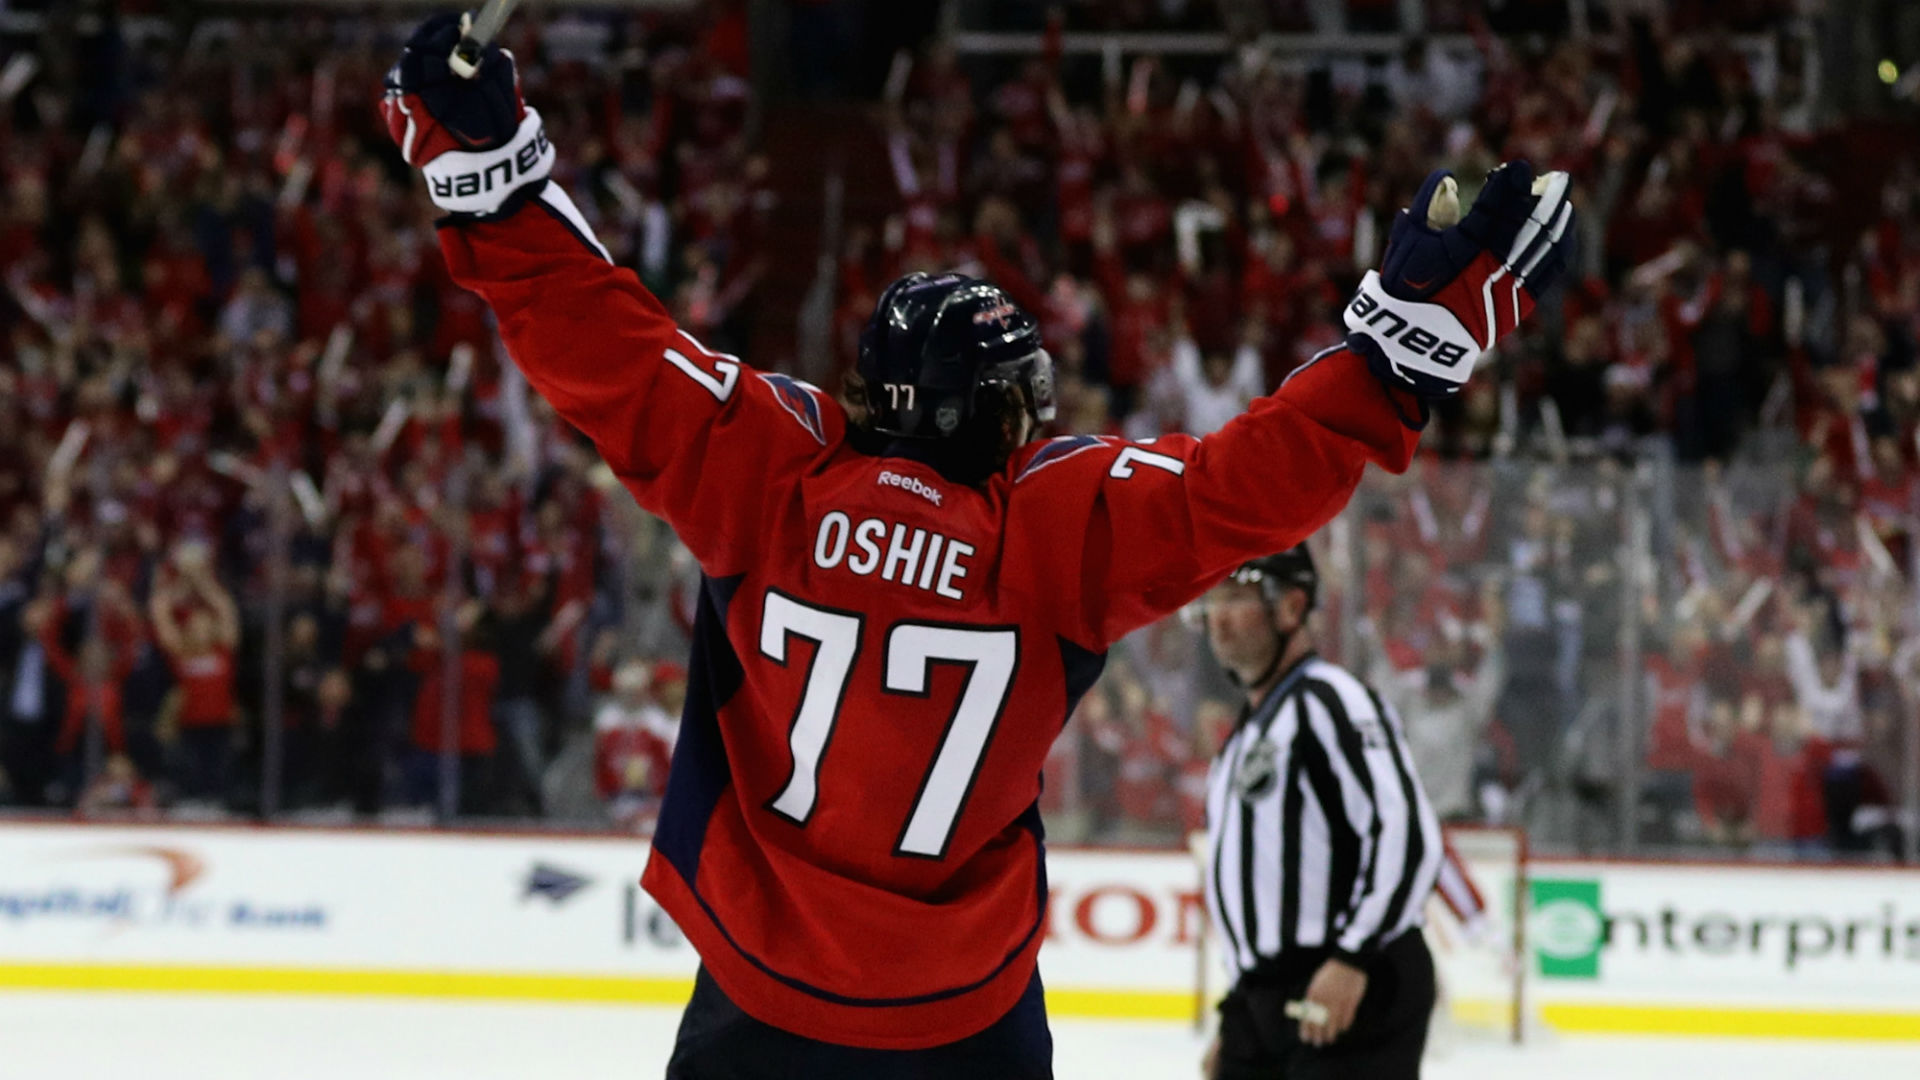 Tj-oshie-042816-getty-ftr-usjpg_2iprg8esj51x1xs50gpvxs4of